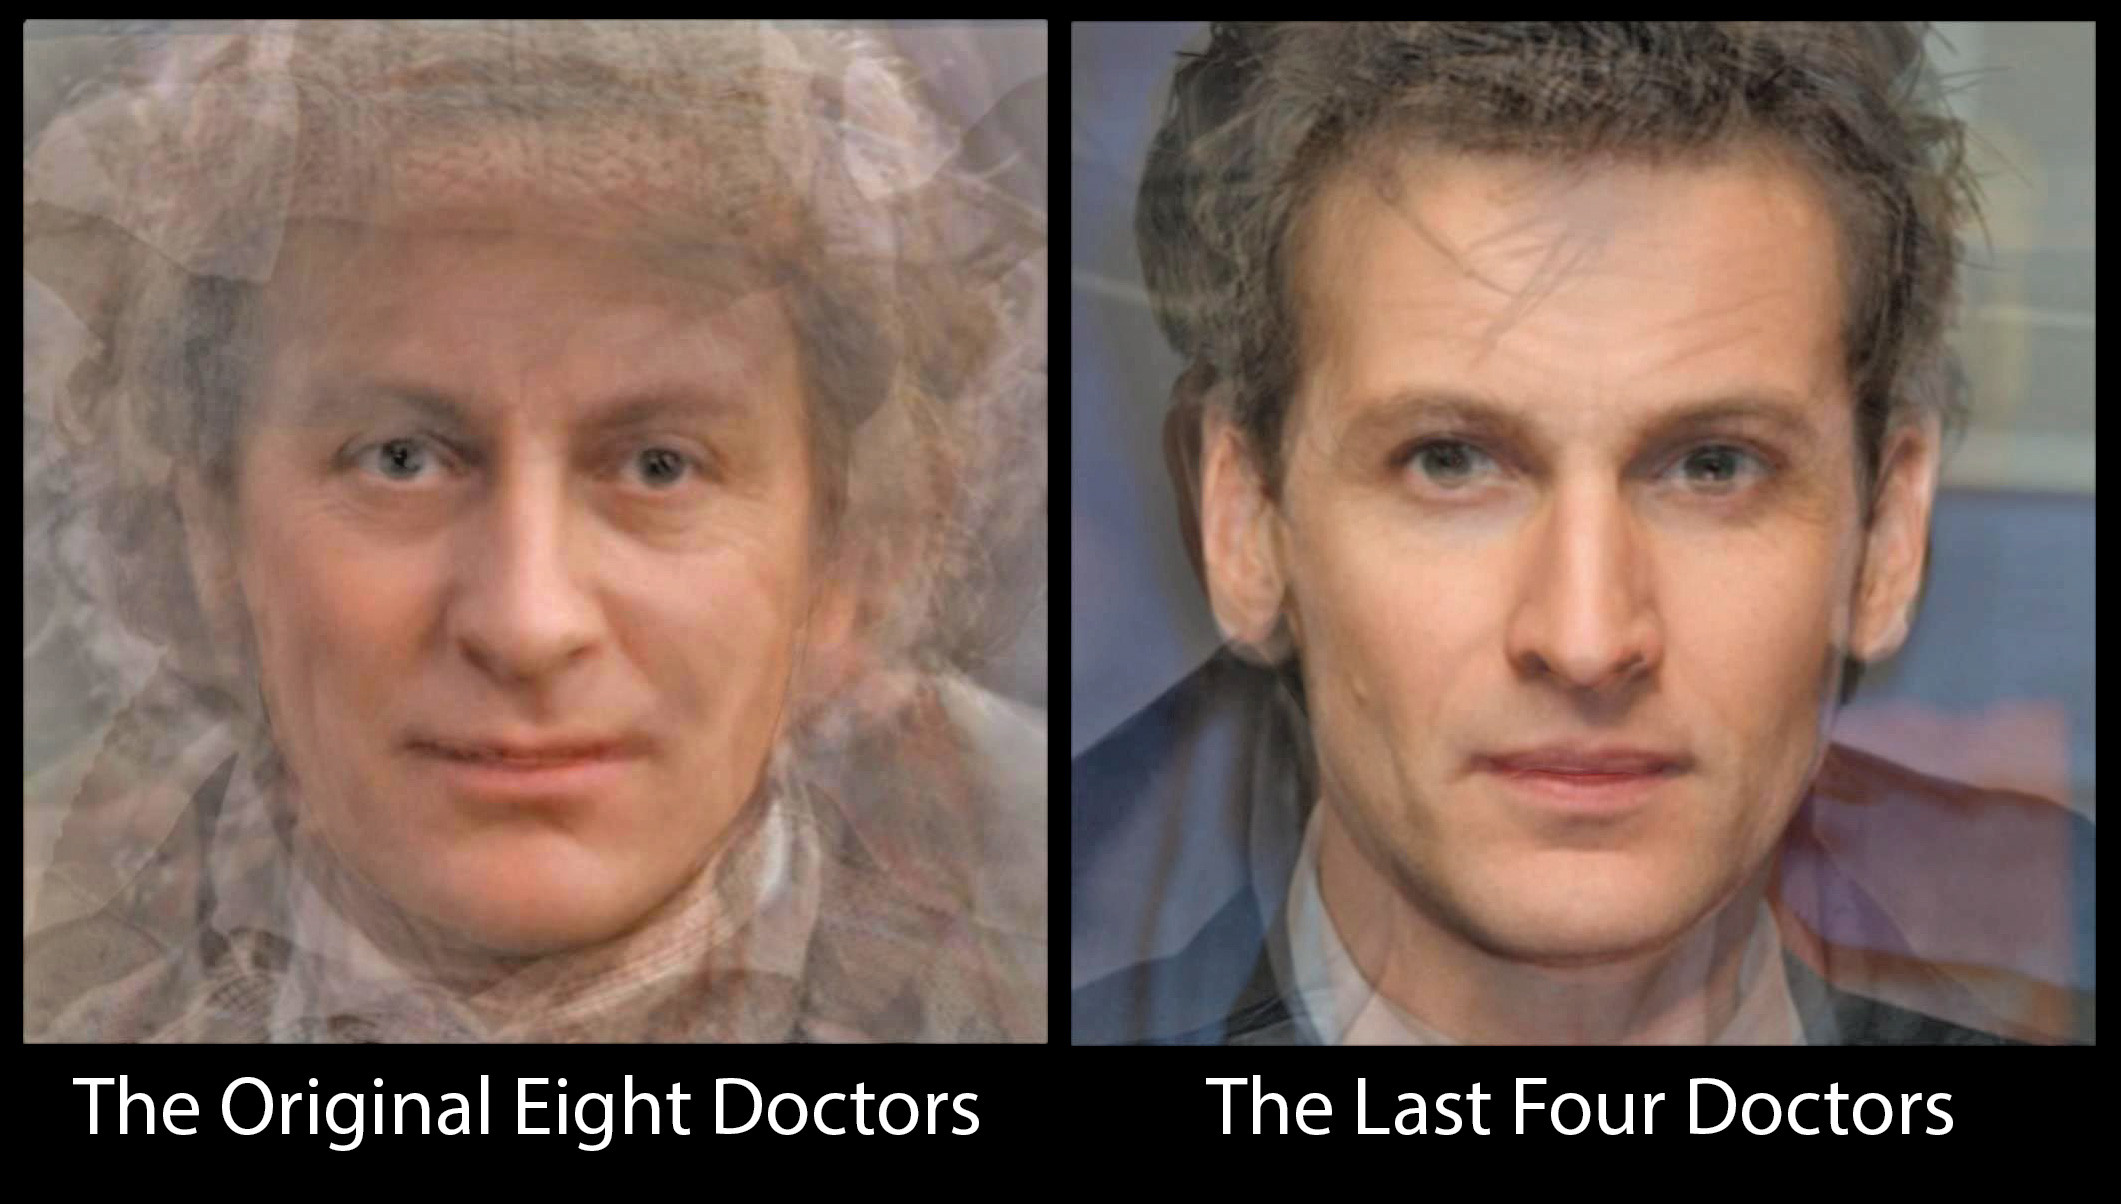 2121x1204 Facial Composite of the Original 8 Doctor Who Actors and the 4 Latest  Doctors